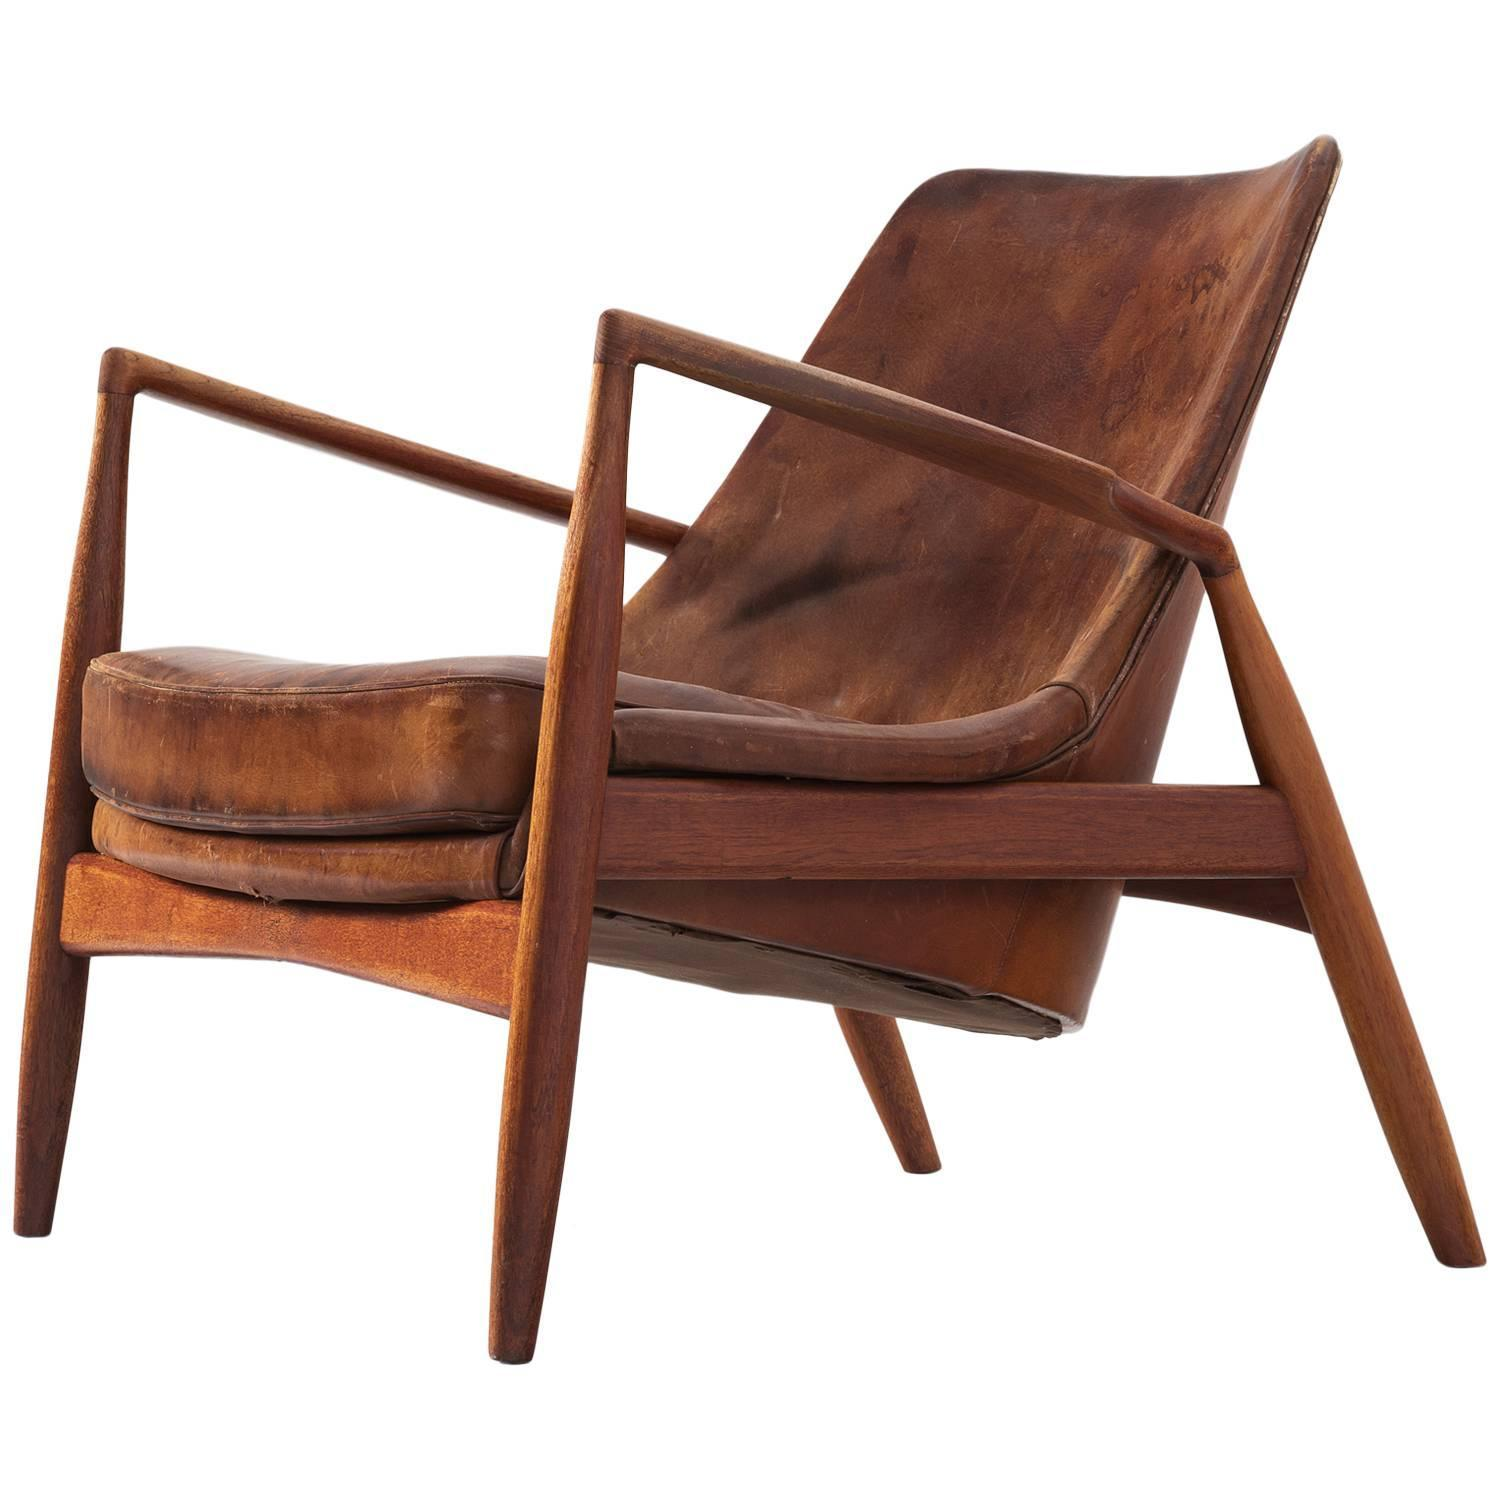 Of four chairs in oak and patinated cognac leather for sale at 1stdibs - Ib Kofod Larsen Seal Lounge Chair In Patinated Cognac Leather For Sale At 1stdibs